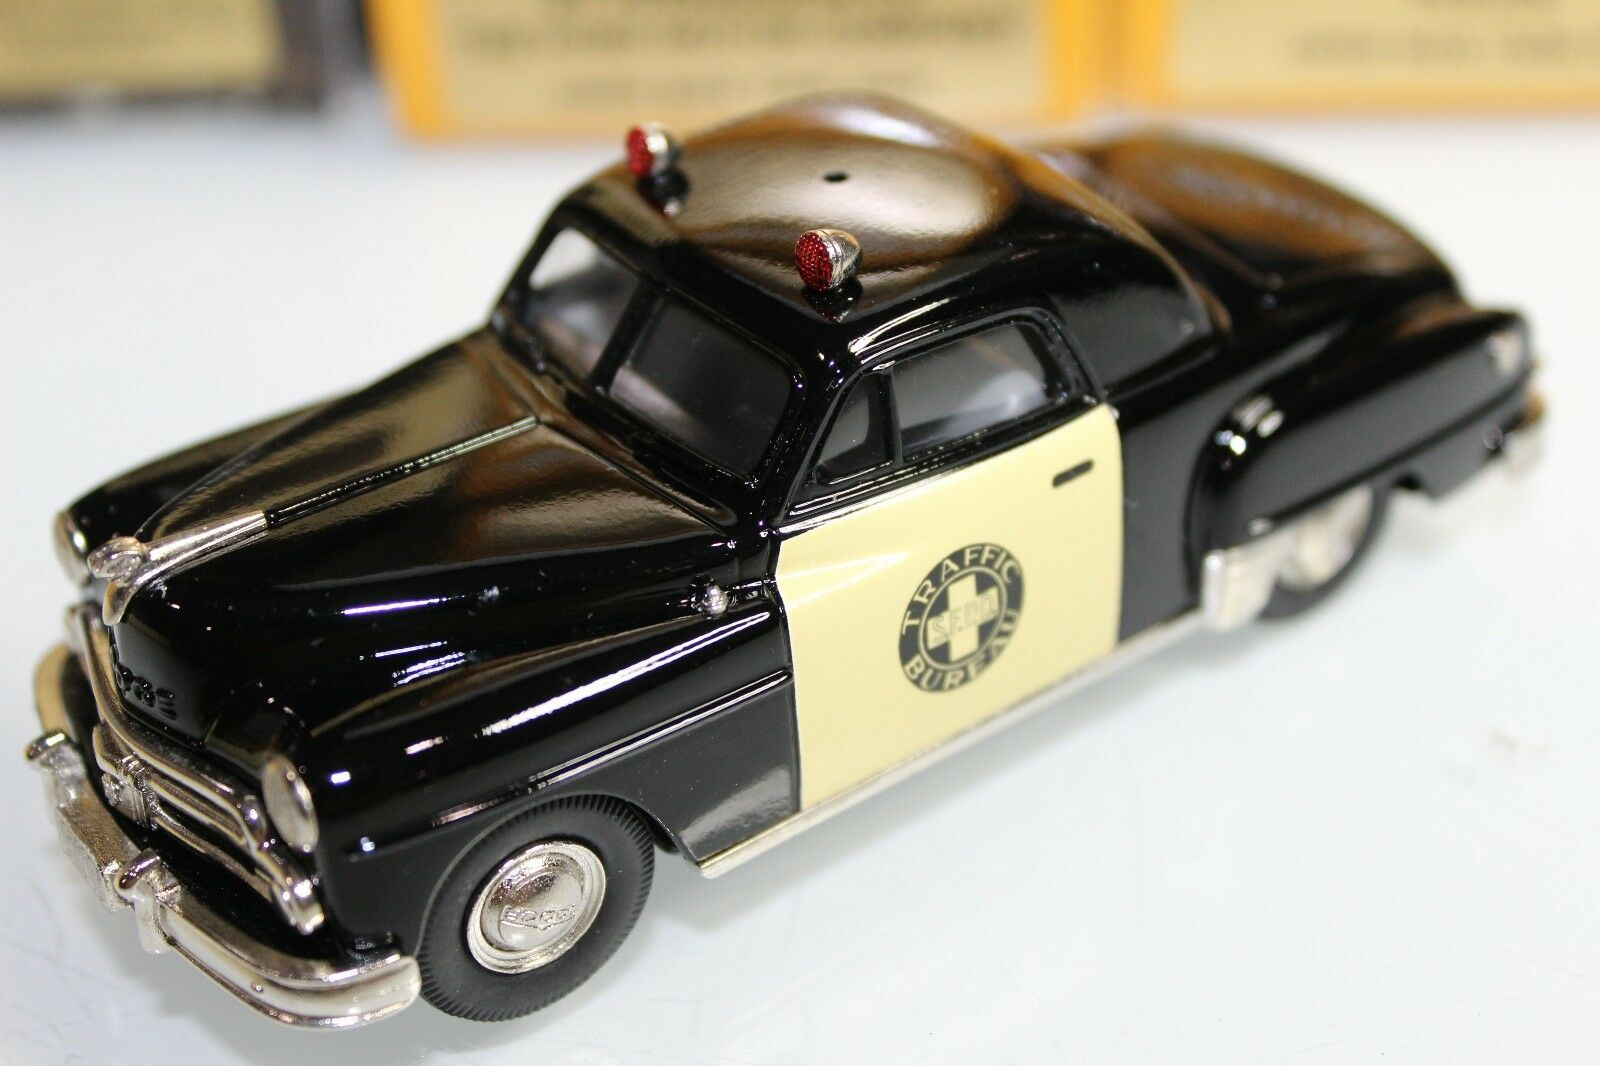 Brooklin Models 1 43 Scale 1950 DODGE WAYFARER COUPE TRAFFIC BUREAU BRK.70X 1999